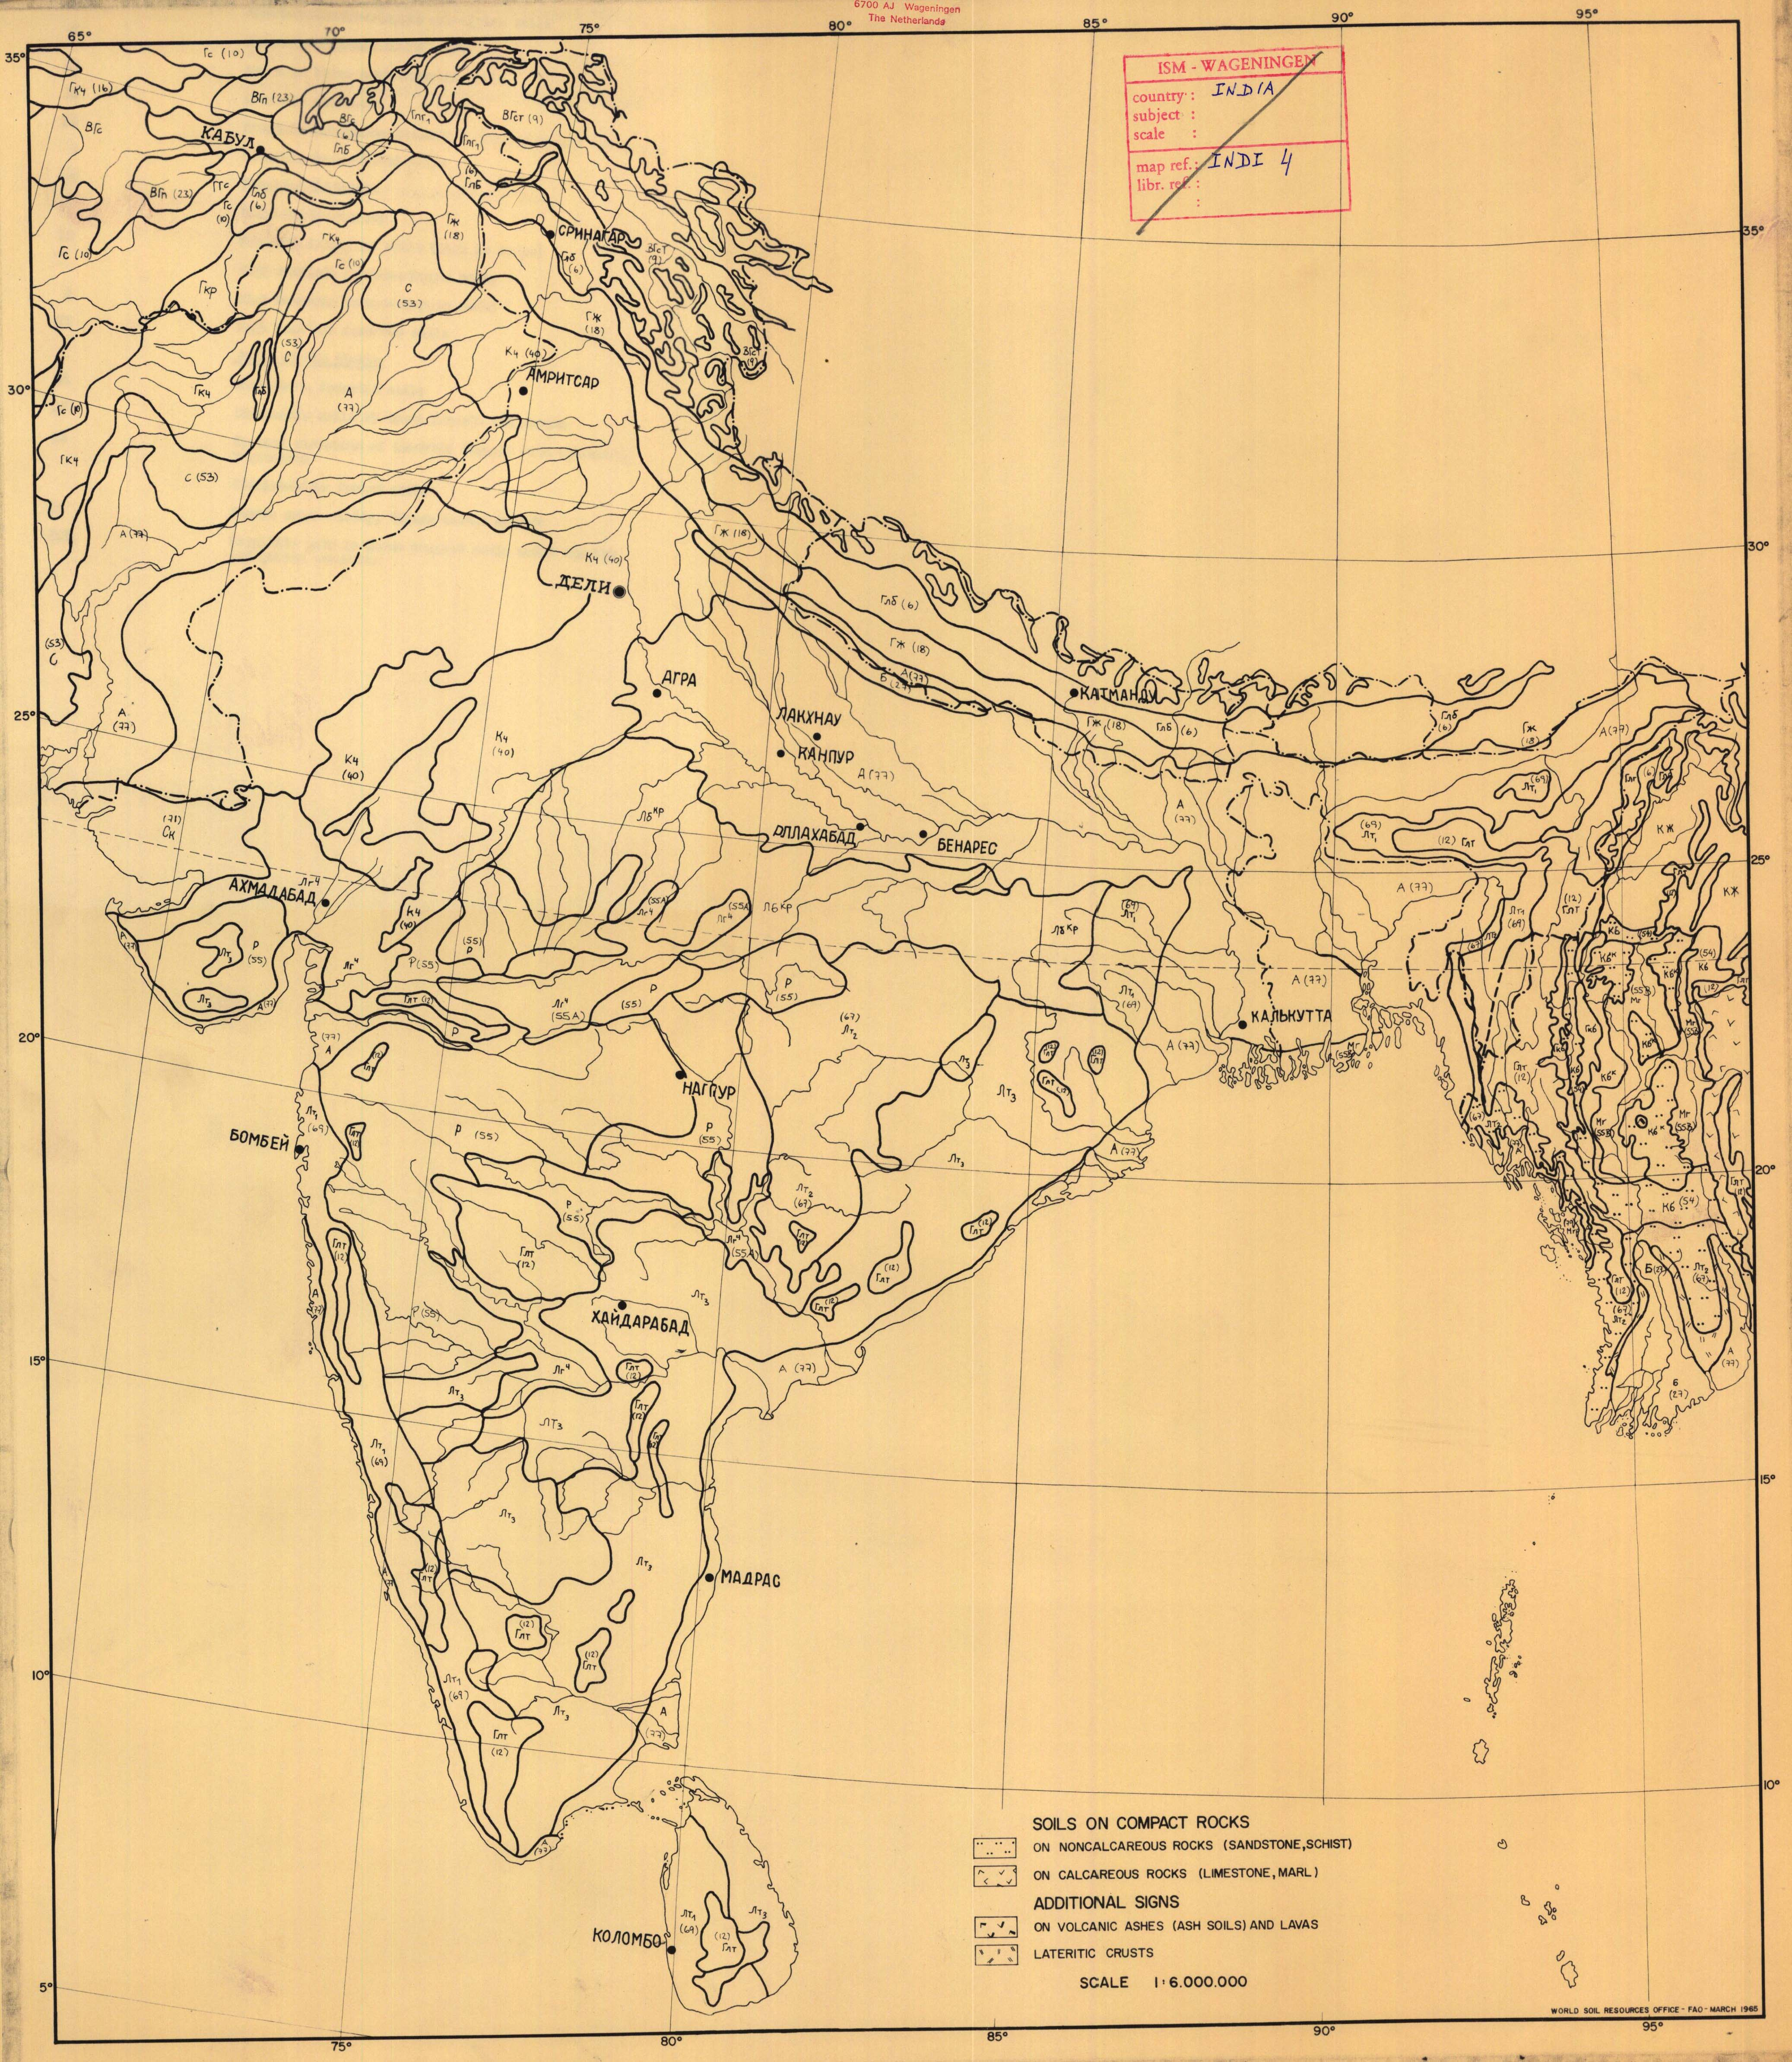 The soil maps of Asia - Display Maps